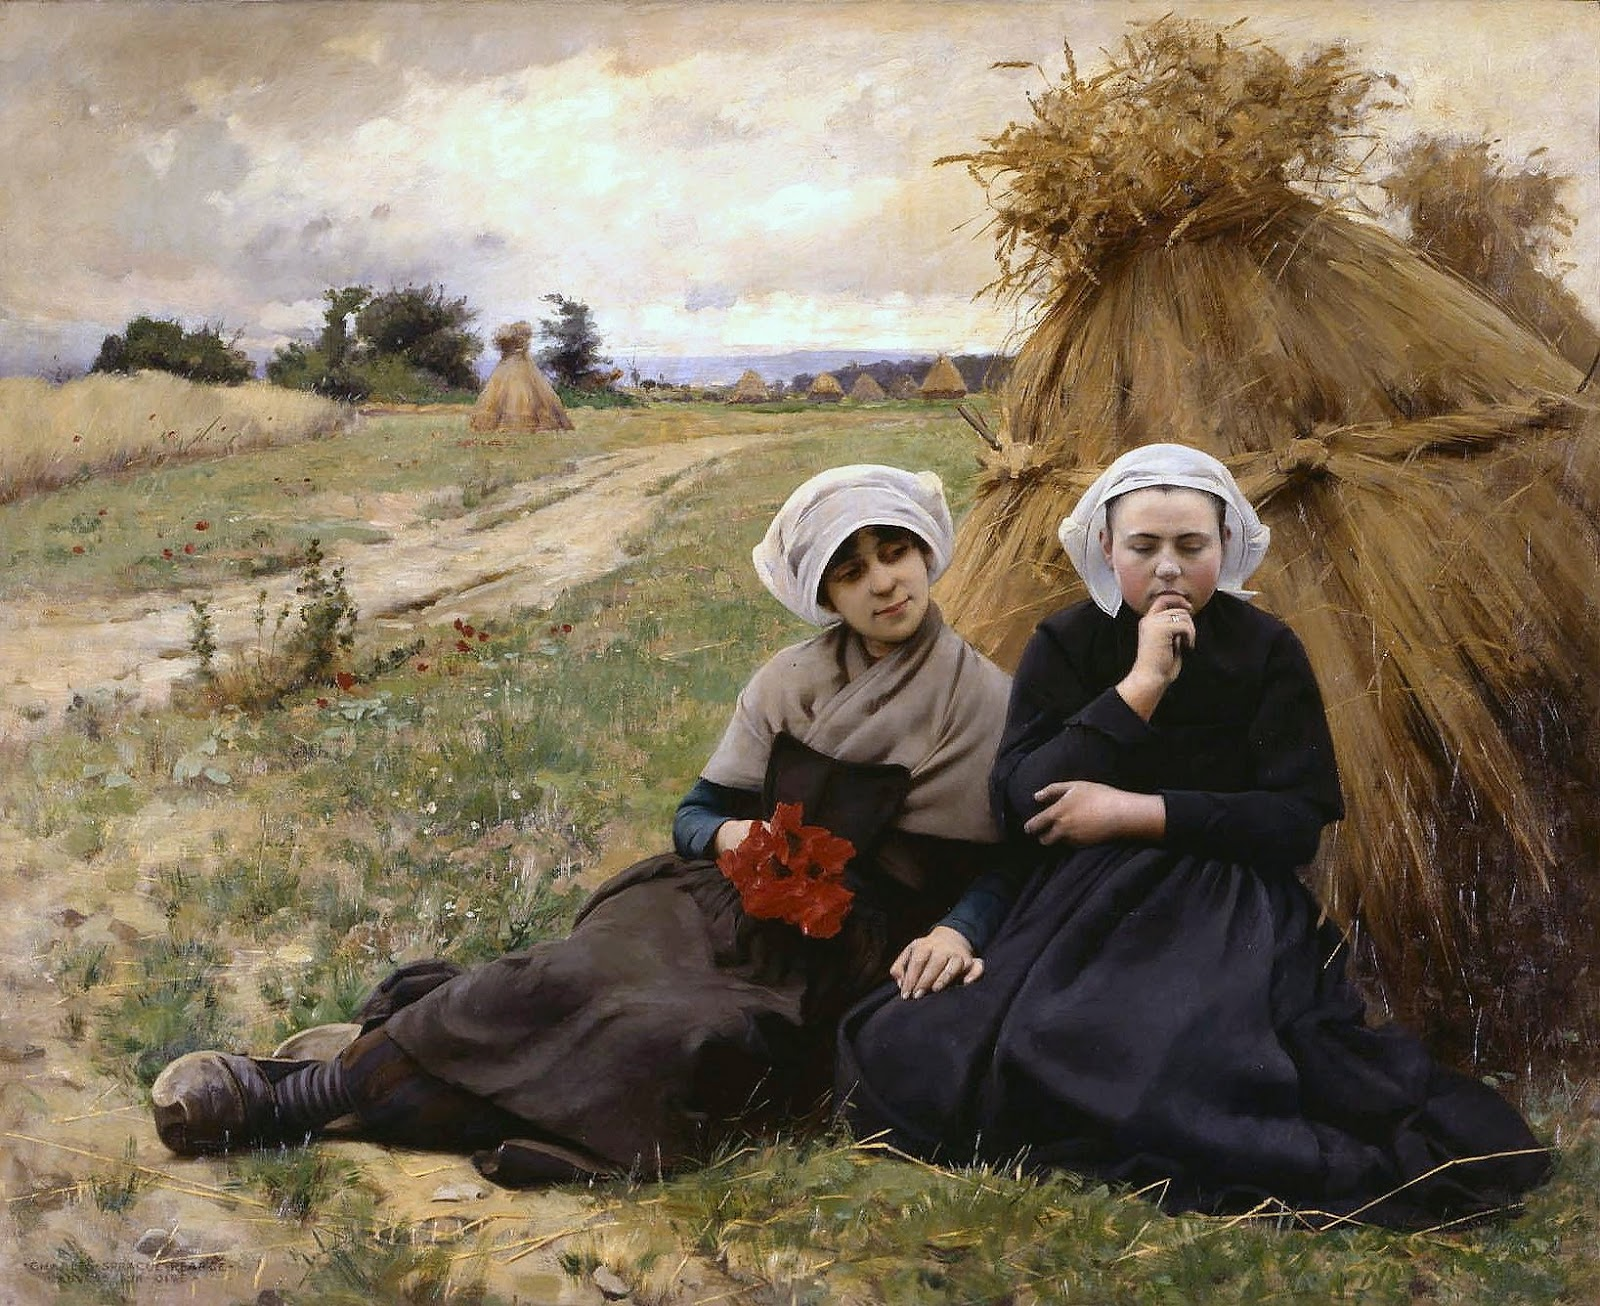 Charles  Sprague  Pearce  in  the  poppy  field